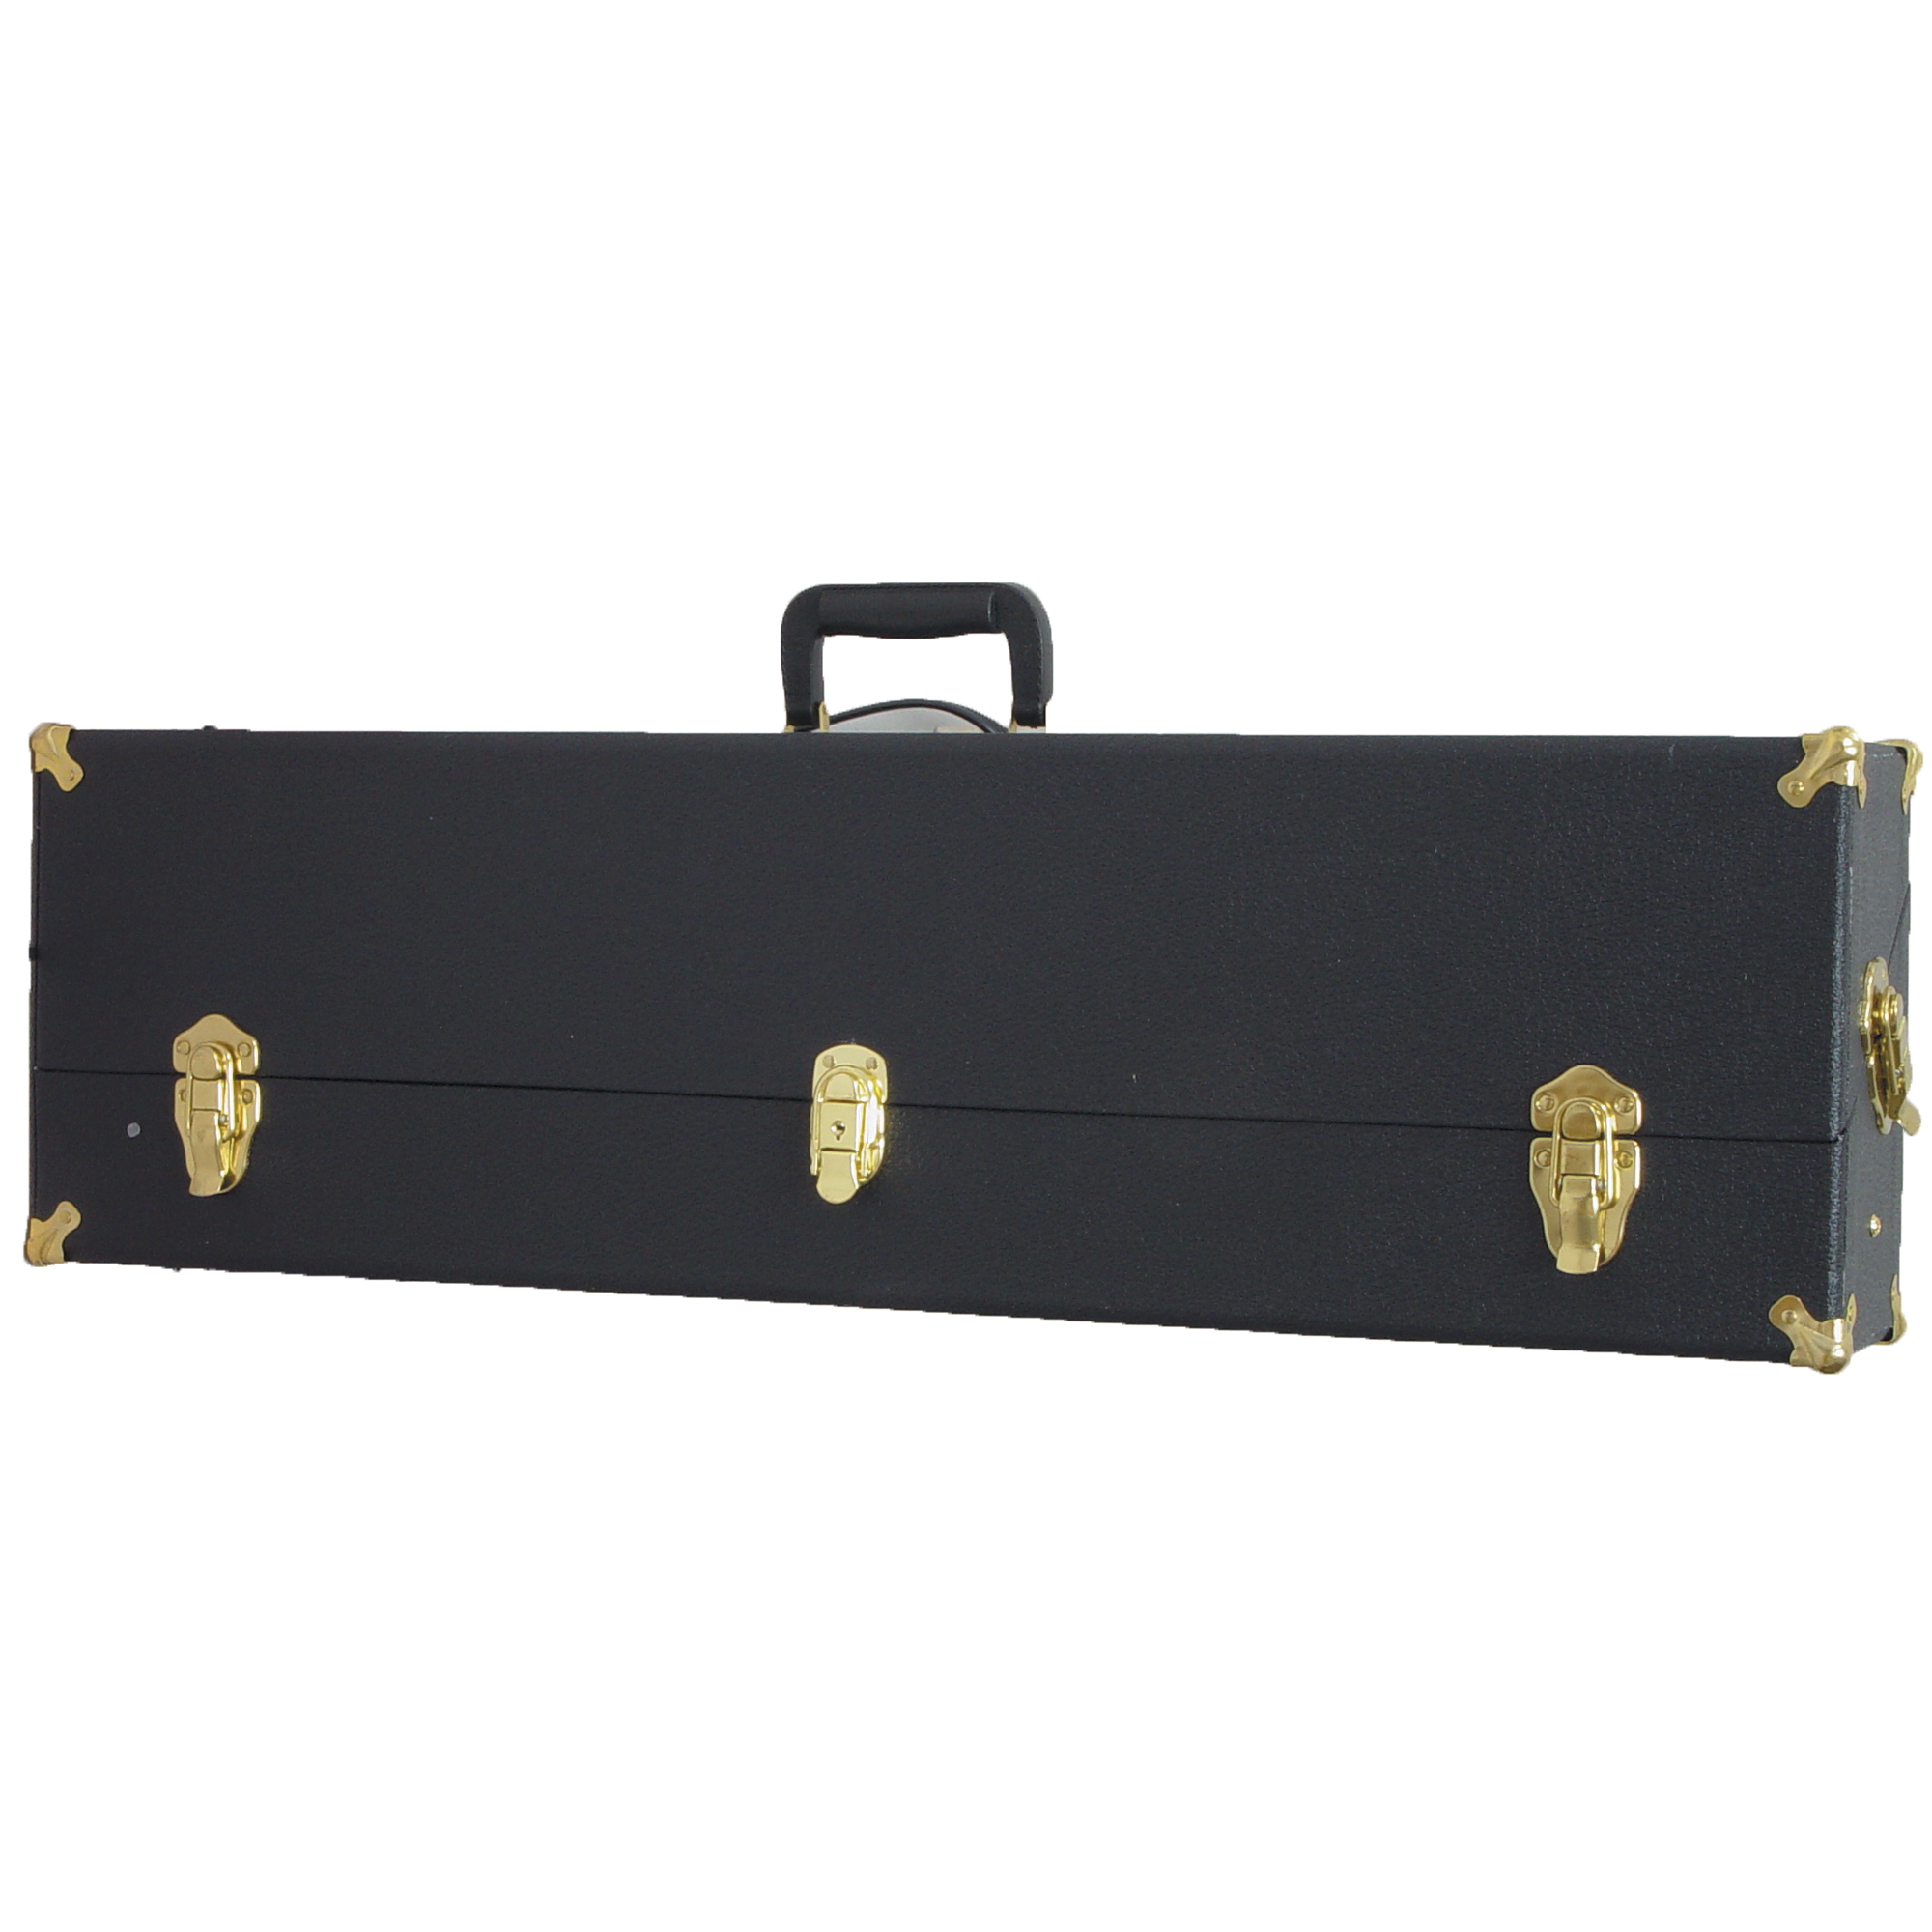 This top of the line Auto Ordnance gun case is a modified replica of the famous FBI Hard Case. It is fully lined with a fine velour-type material and the custom tailored compartments will accommodate Thompson long guns (with detached buttstock).